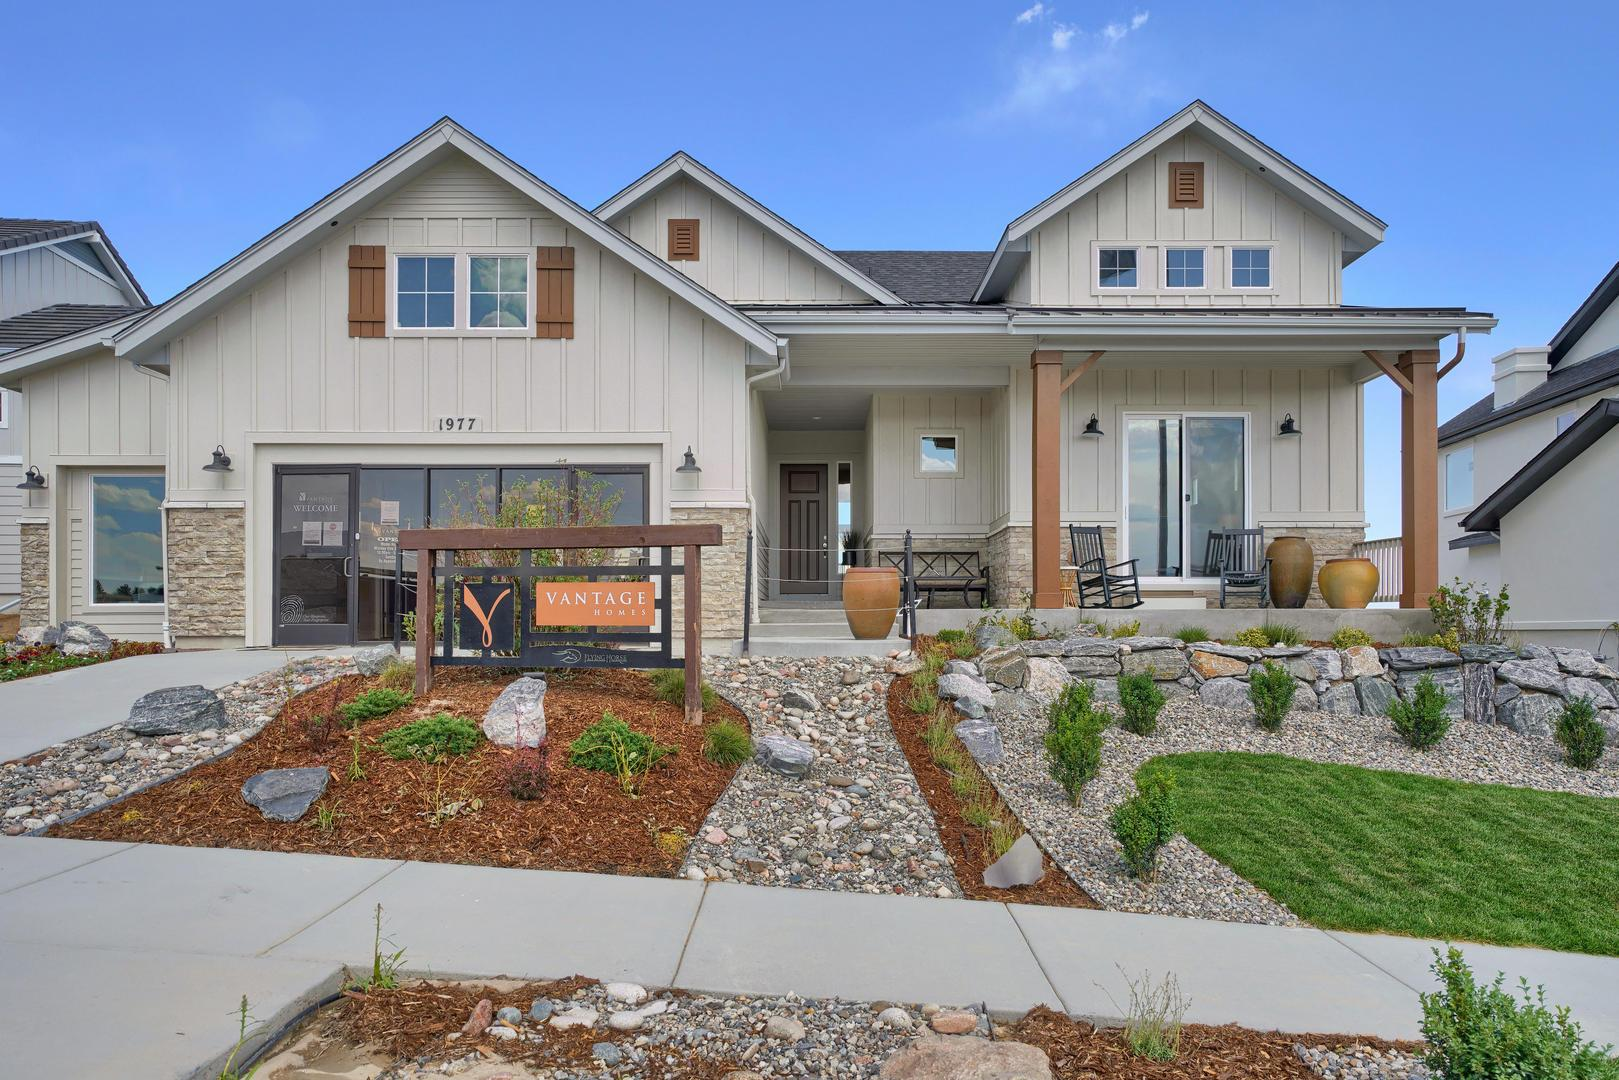 'Flying Horse' by Vantage Homes in Colorado Springs